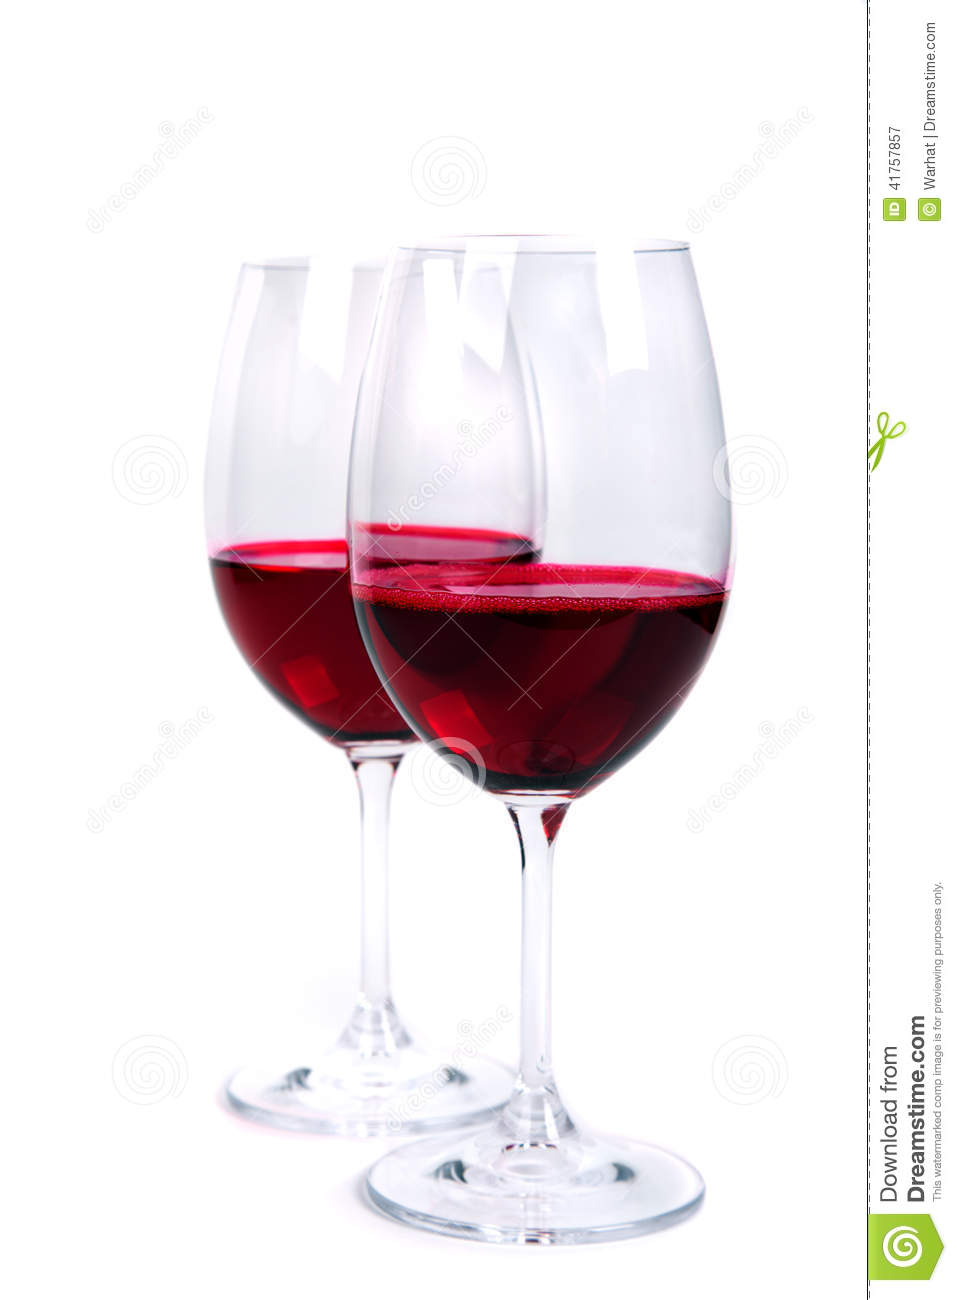 Ariel Cabernet Sauvignon Non-alcoholic Red Wine Two...